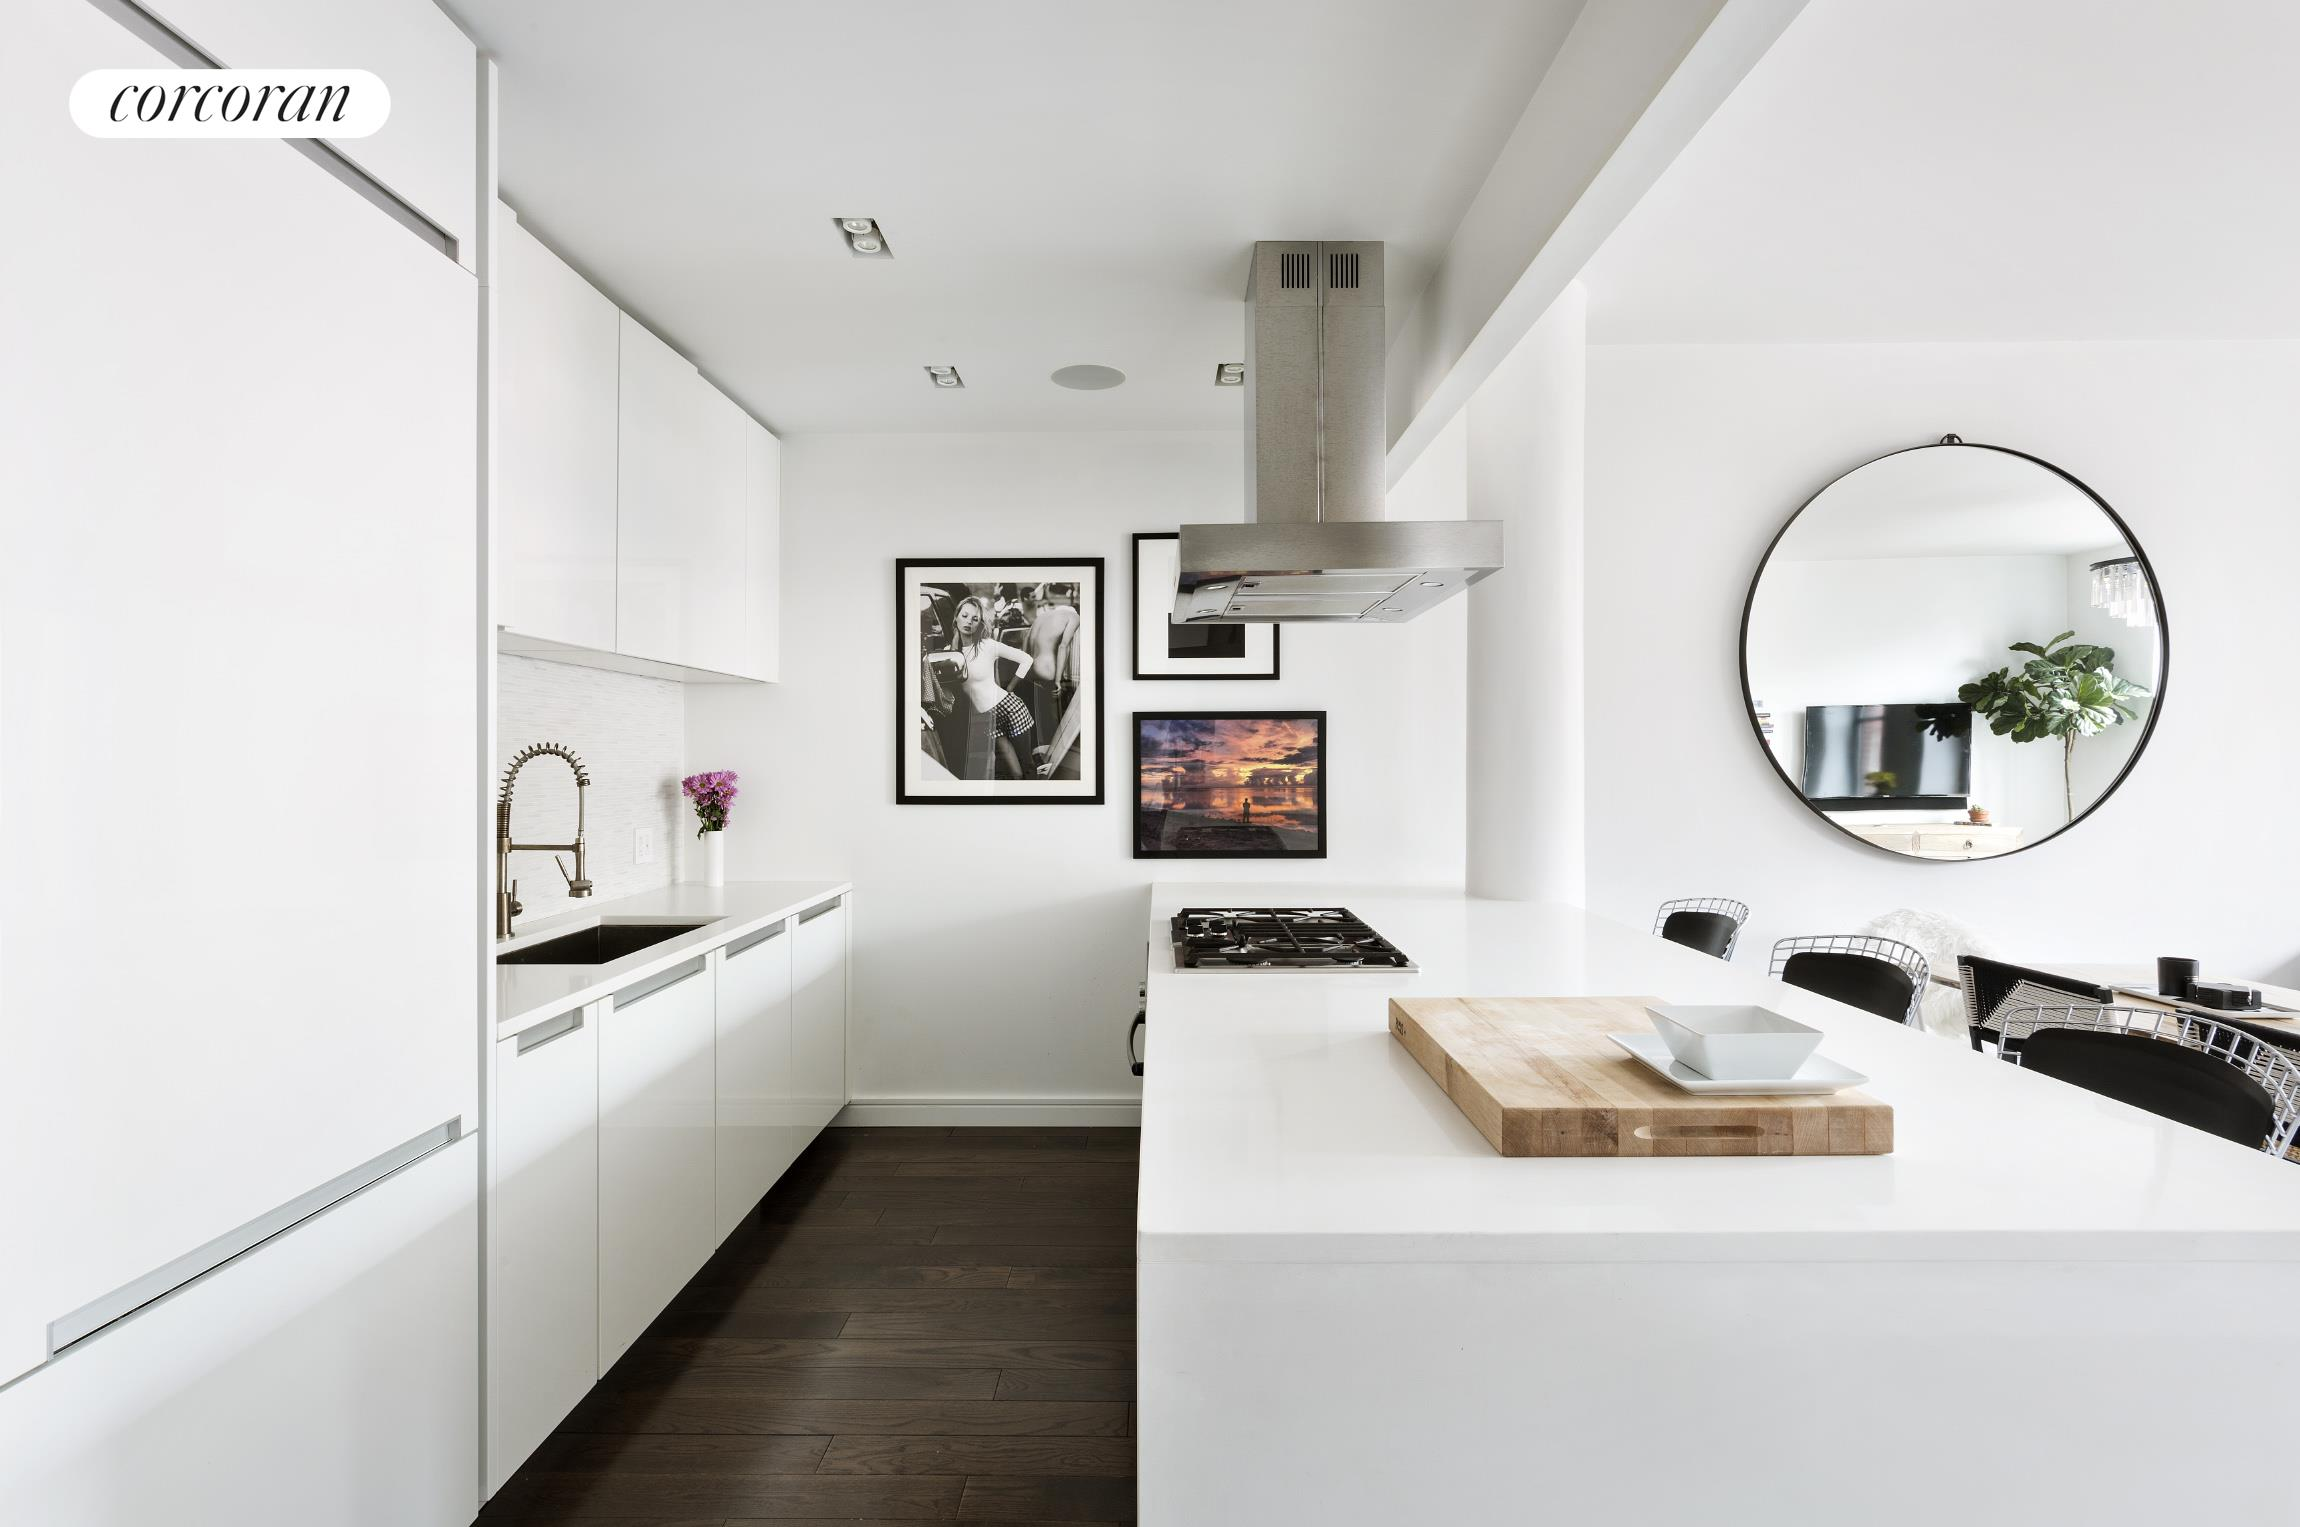 Apartment 6K at the coveted building, 250 West Street, is 1035 square feet of oversized loft living in the heart of Tribeca.Thoughtfully laid out, 6K features a generously proportioned living, dining, and entertaining space. The open chef's kitchen includes a large center island with Poggenpohl cabinetry, Sub-Zero fridge & freezer, Bosch range, dishwasher, and wine fridge. Marble-clad primary bath features a double sink and deep soaking tub. Iconic oversized arched windows, 10-foot ceilings, and 5-inch wide American oak plank floors add to this impressive space.Meticulously renovated as a Crestron smart home, 6K includes automated lights, recessed electric shades and music sound system throughout. Additional features to note; custom Nathan Orsman lighting, fully fitted dressing area, and in-unit Miele washer/dryer. *AC & electricity included in rent*250 West Street is a full-service luxury building located in Tribeca's historic landmark district. Amenities include 24-hour doorman, wood-paneled library lounge, 61-foot pool, state of the art fitness center, playroom, and a 5,000 square foot roof terrace with panoramic views, sundeck, lounge, and dining area.